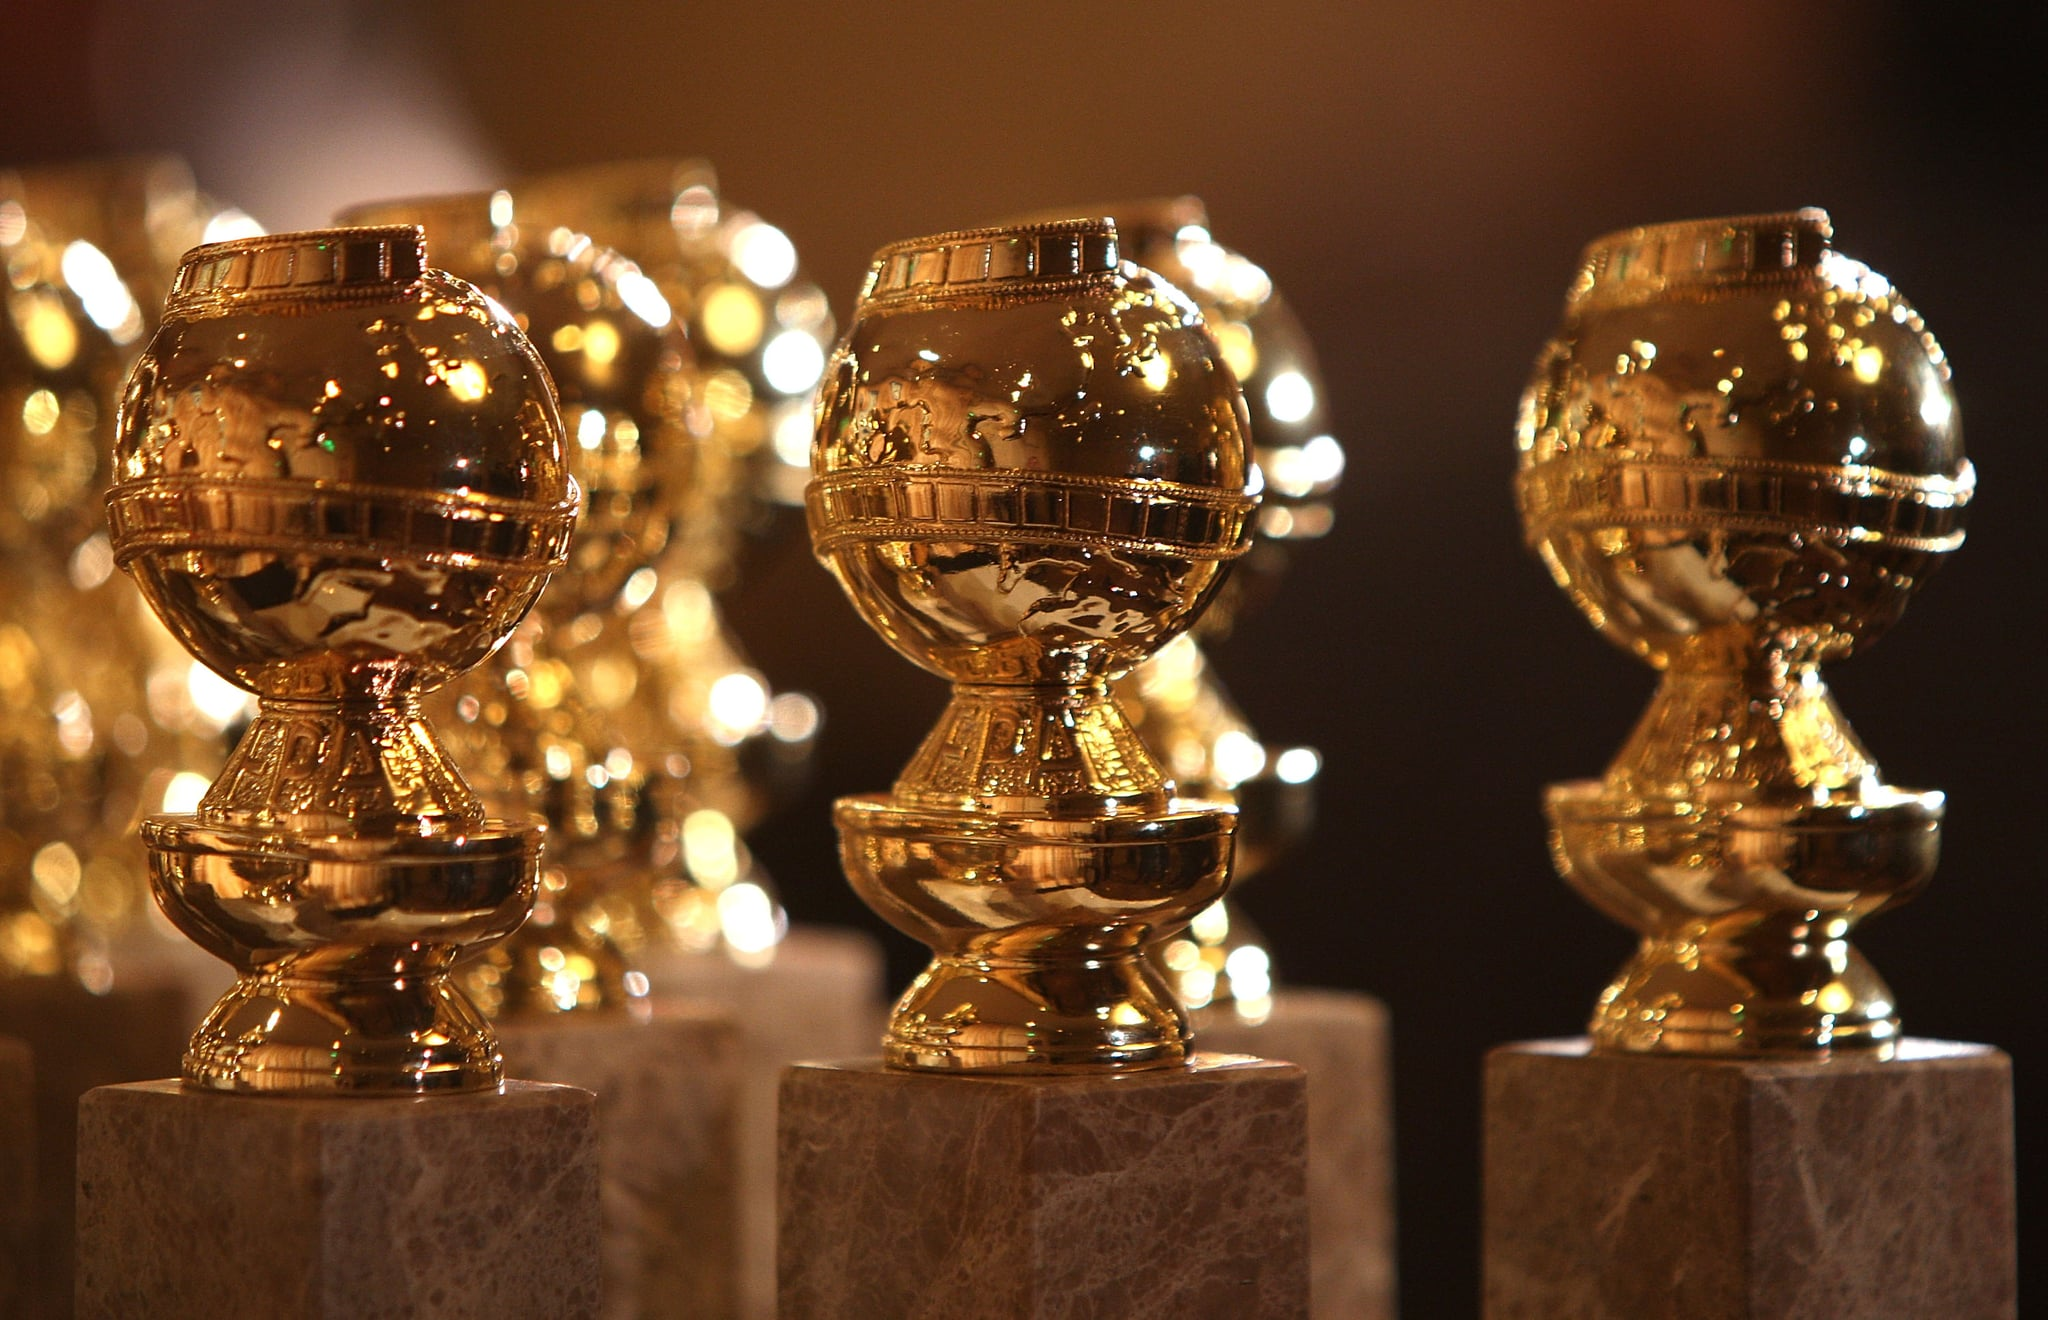 BEVERLY HILLS, CA - JANUARY 06:  The new 2009 Golden Globe statuettes are on display during an unveiling by the Hollywood Foreign Press Association at the Beverly Hilton Hotel on January 6, 2009 in Beverly Hills, California. The 66th annual Golden Globe Awards are scheduled for January 11.  (Photo by Frazer Harrison/Getty Images)